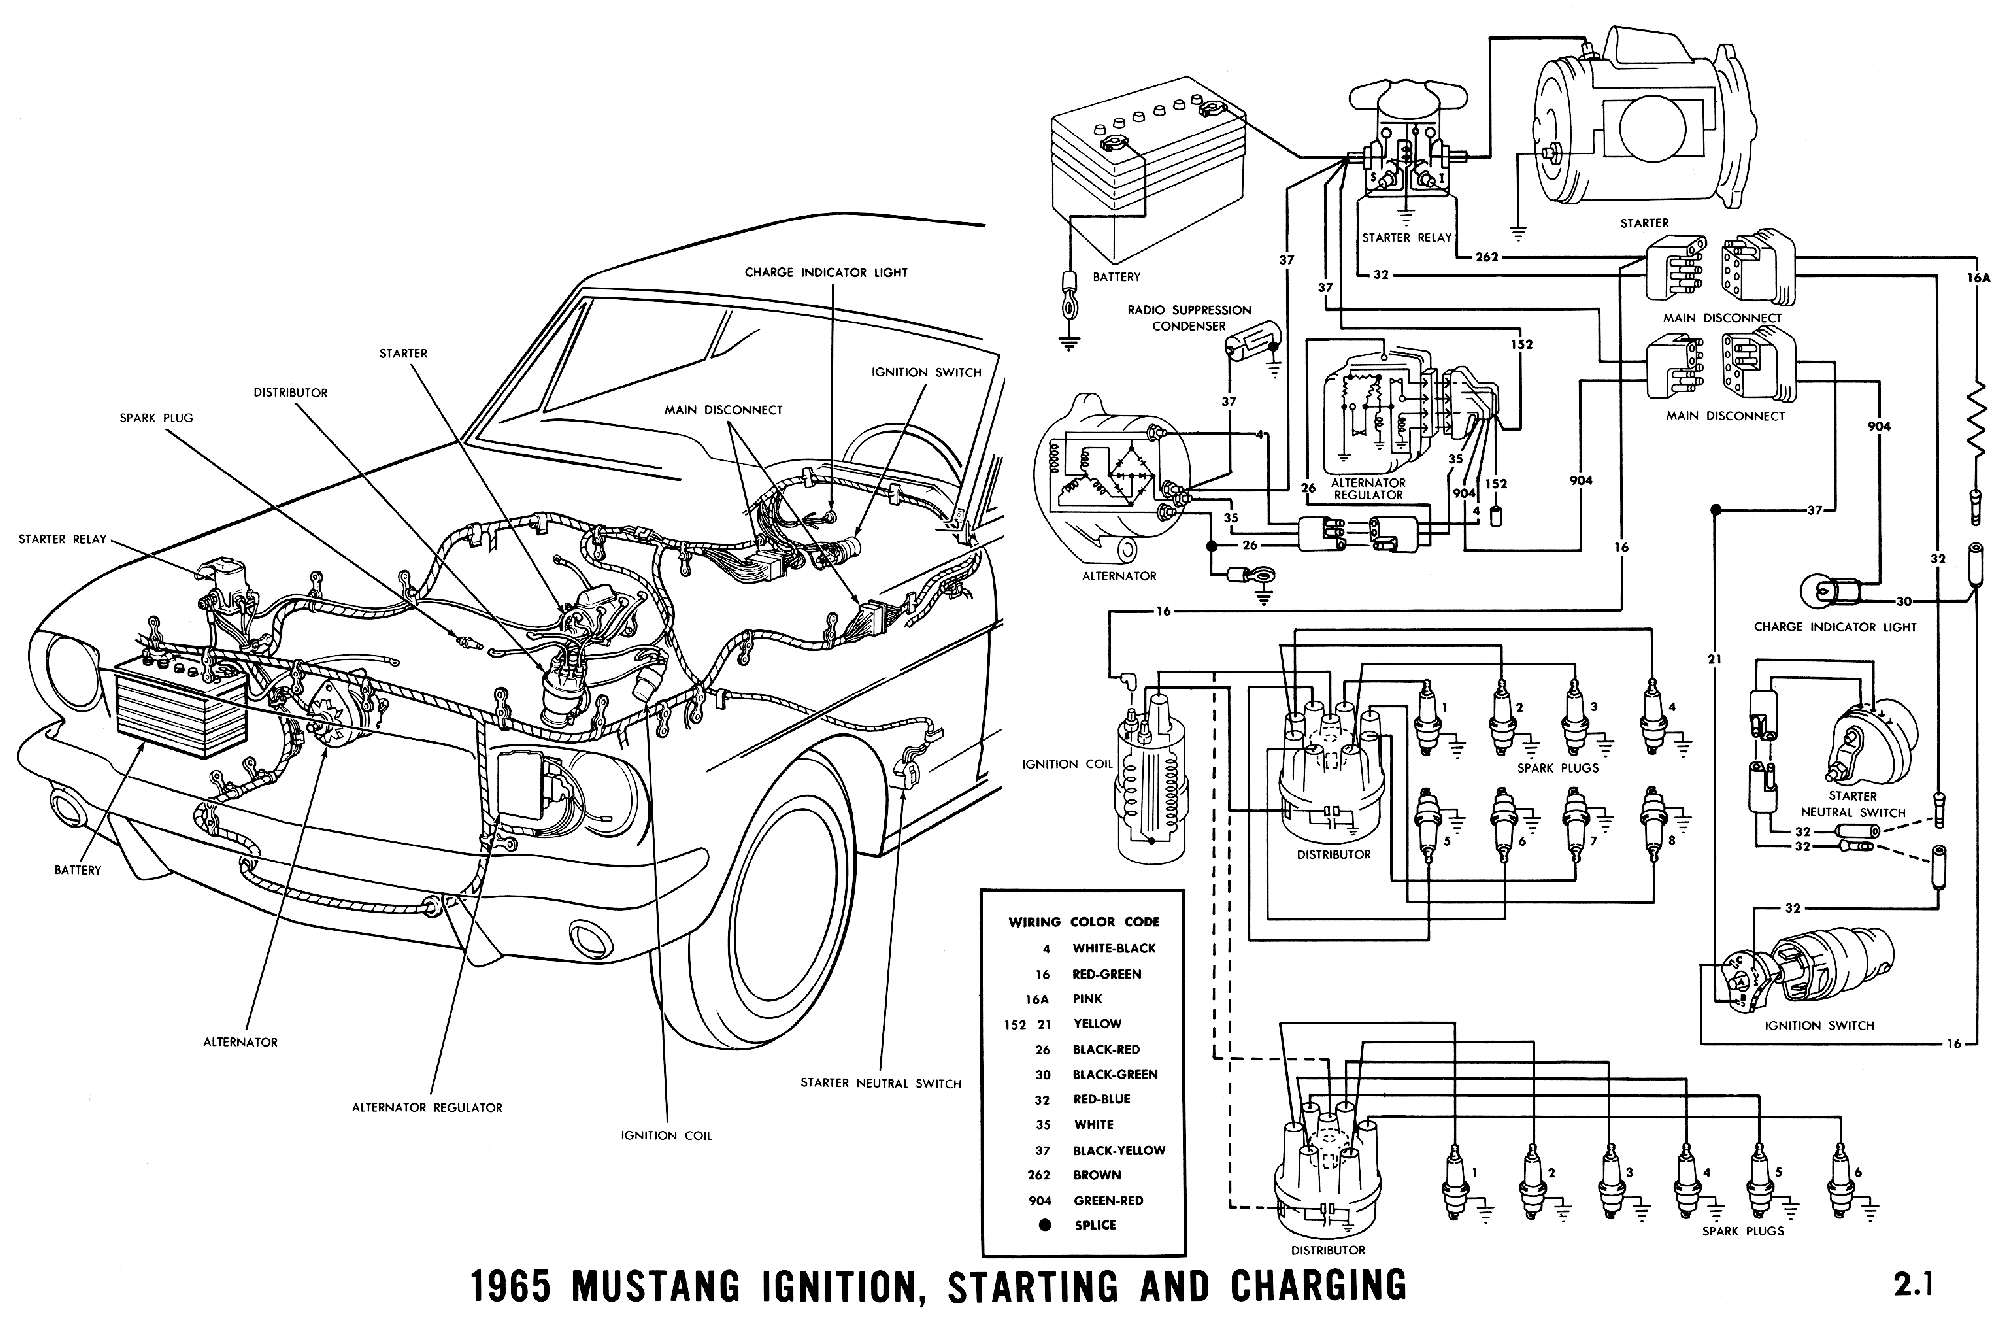 Alternator Wiring Diagram For 1965 Mustang Good 1st Automotive 65 Ford Third Level Rh 5 4 14 Jacobwinterstein Com Harness 1967